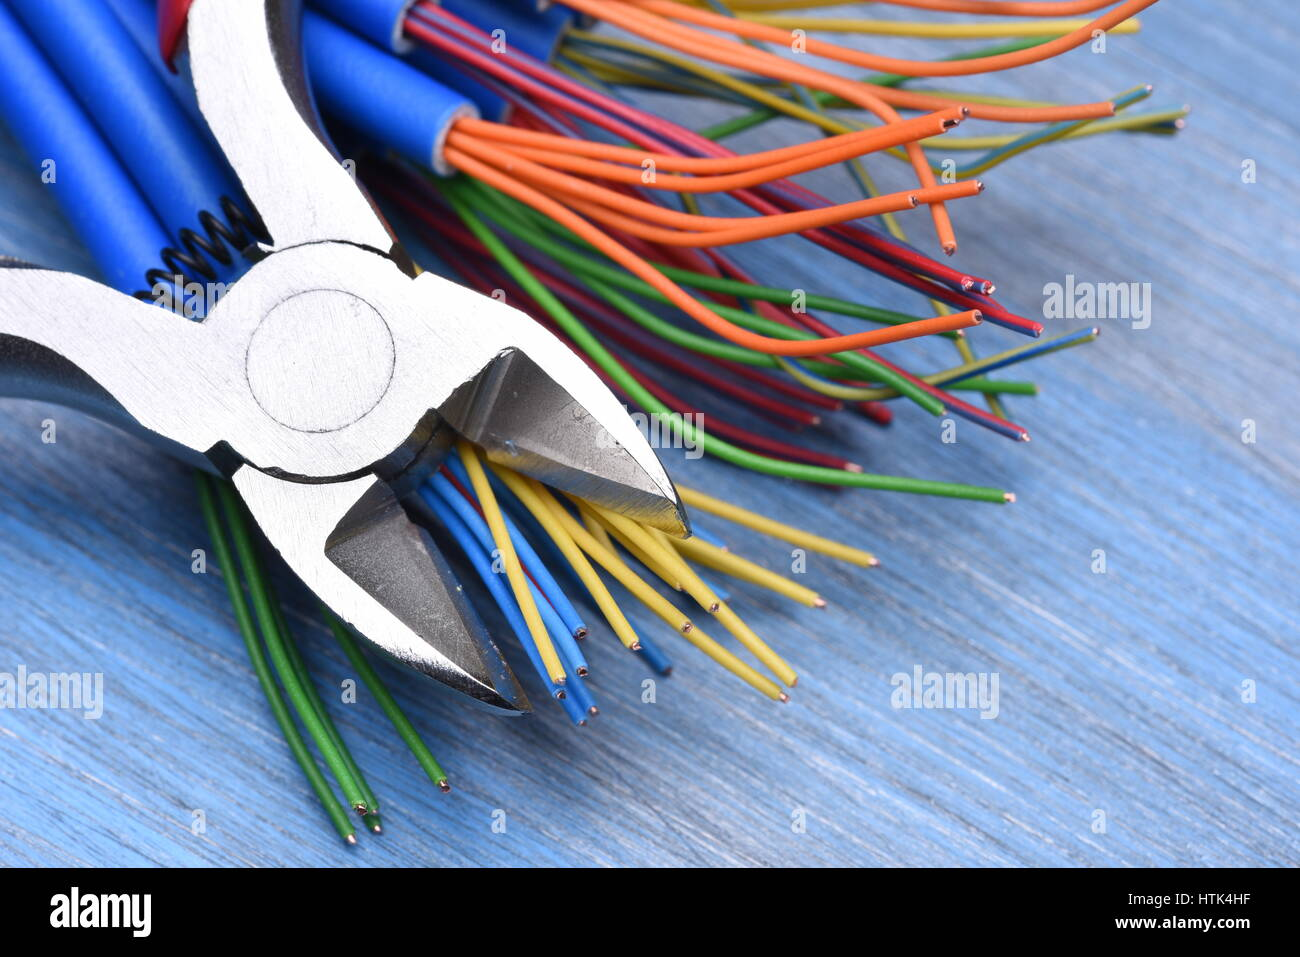 Electrical Tool And Wires On Metal Background Stock Photo Alamy